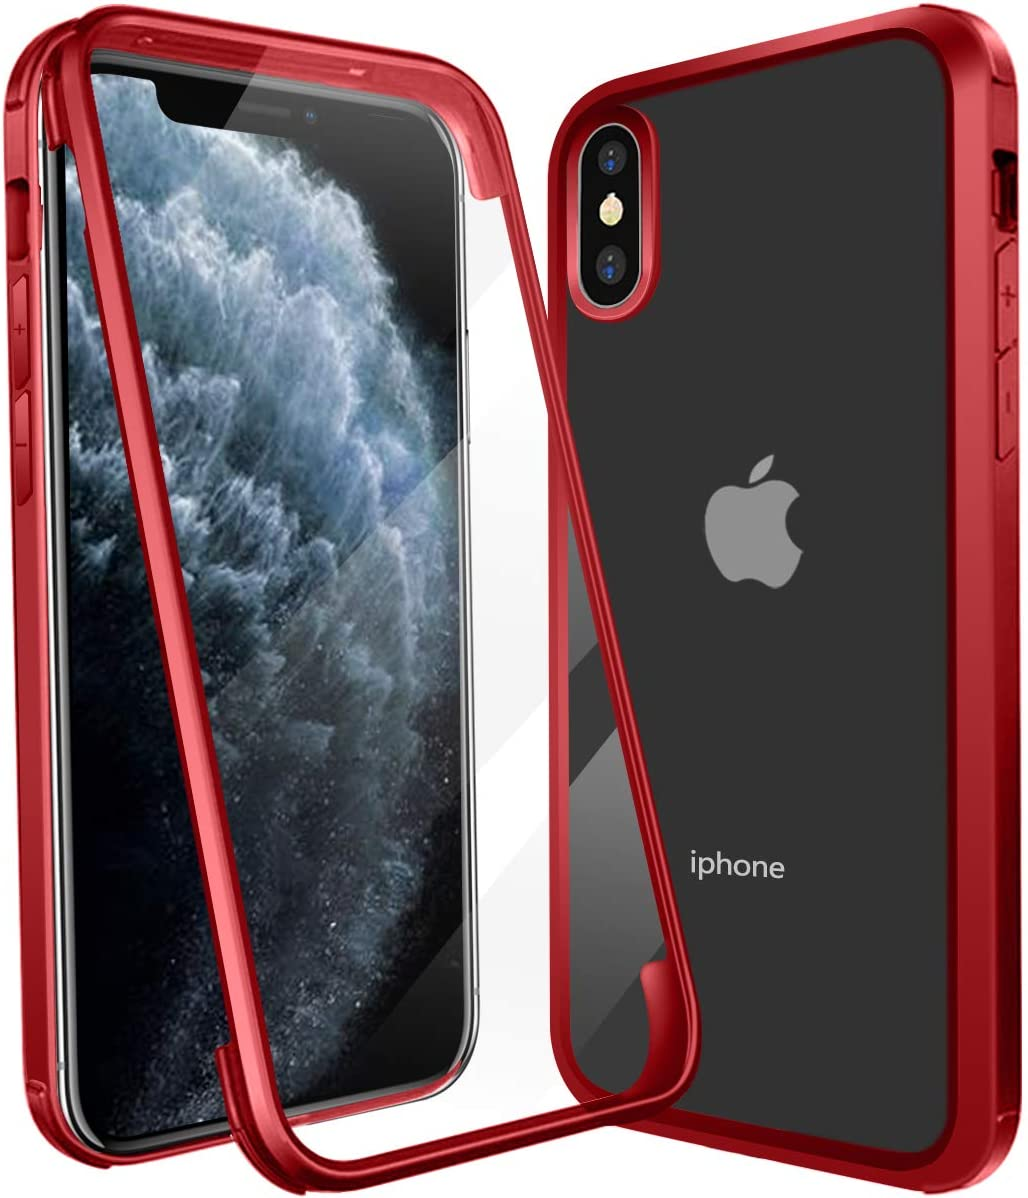 Case for iPhone XR, Built-in Screen Protector, Double Sided Tempered Glass, Rugged Bumper Frame, Support Wireless Charge Ultra Thin 360° Protection Shockproof Clear Case for Apple iPhone XR